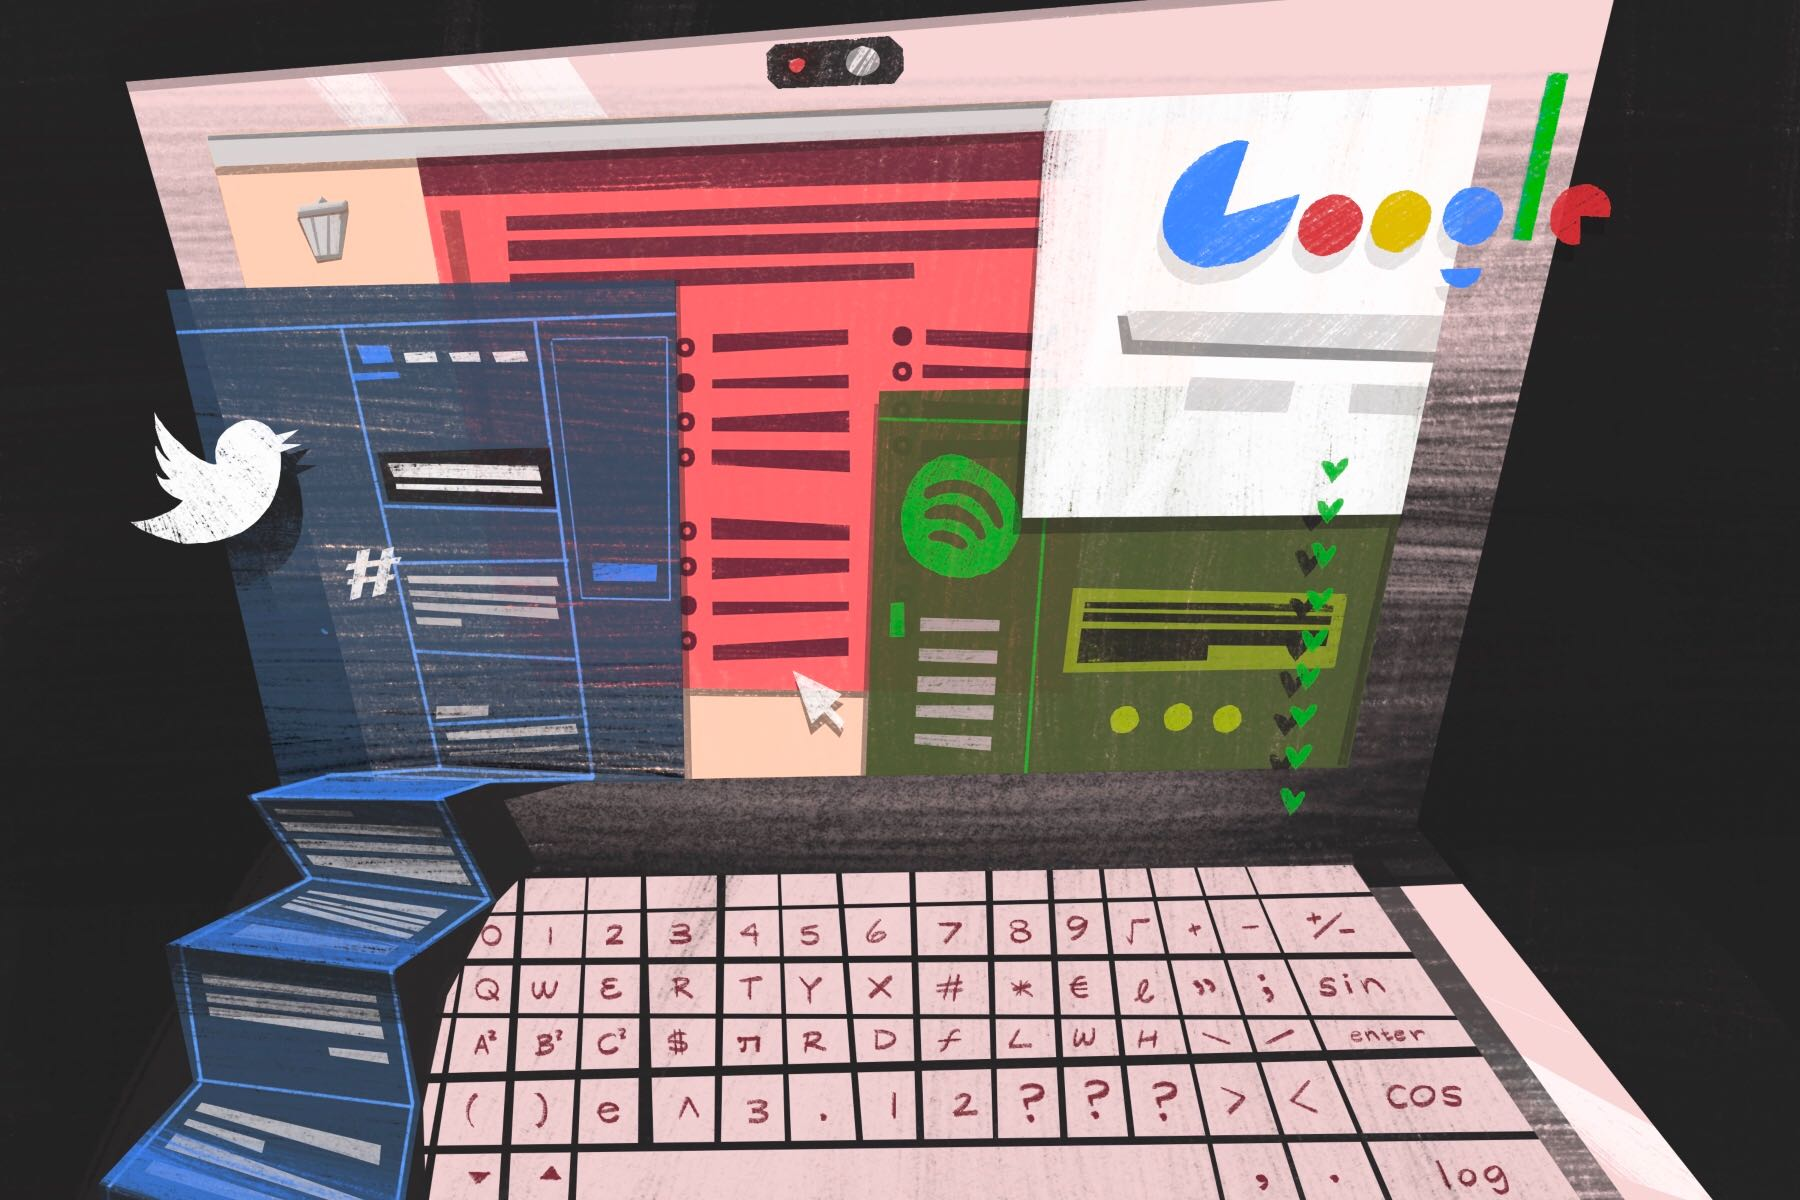 An illustration by Francesca Mahaney of a laptop screen filled with apps in an article about online exams